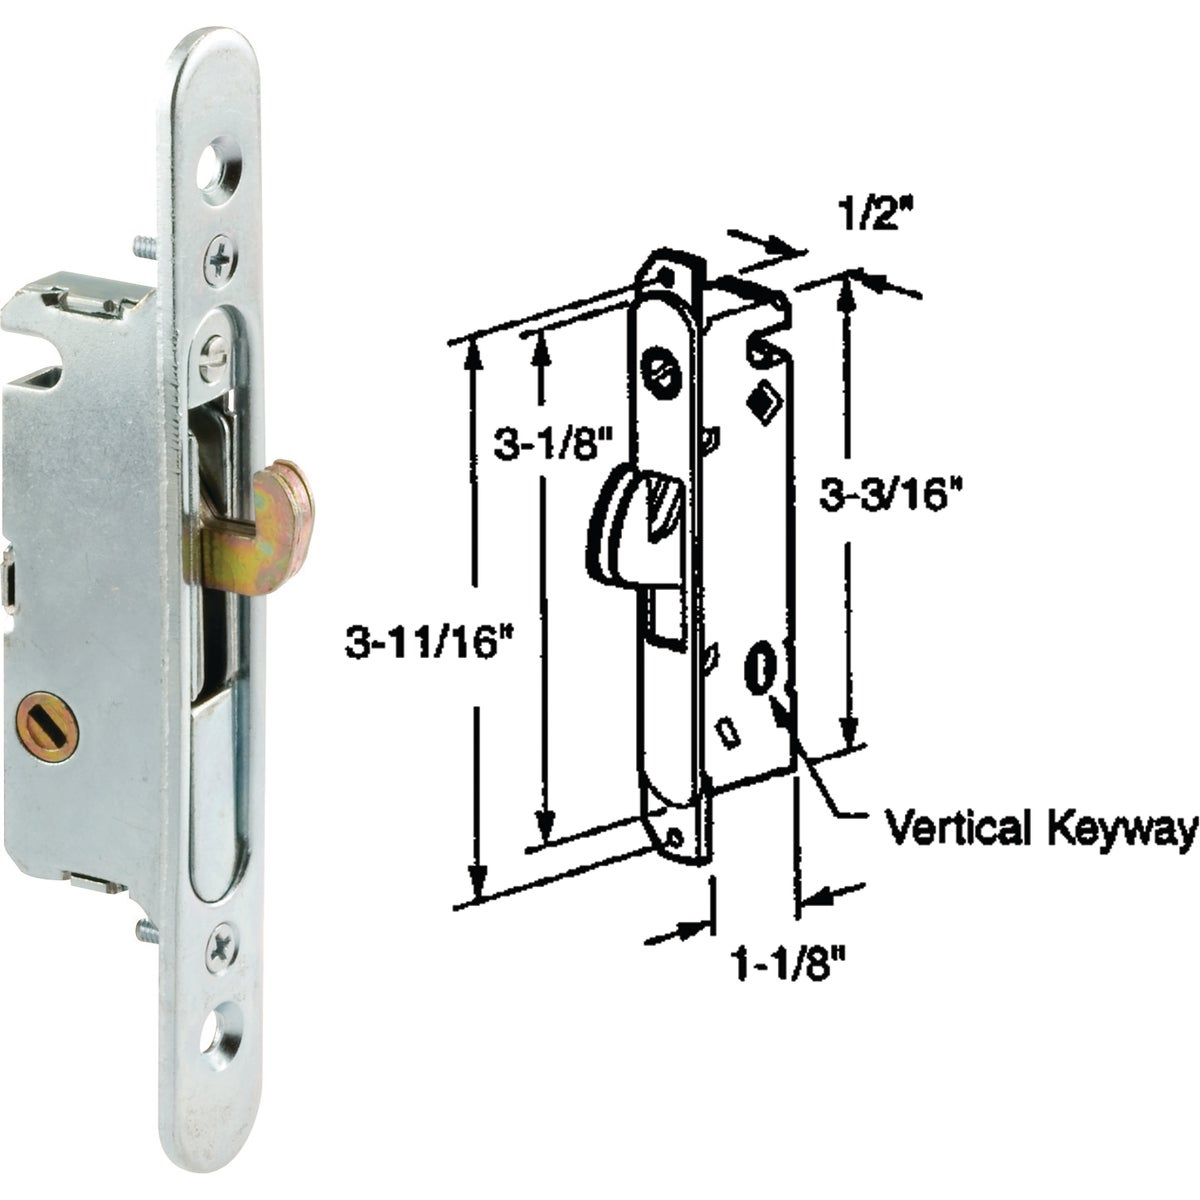 MORTISE PATIO LOCK - 153554 by Prime Line Products